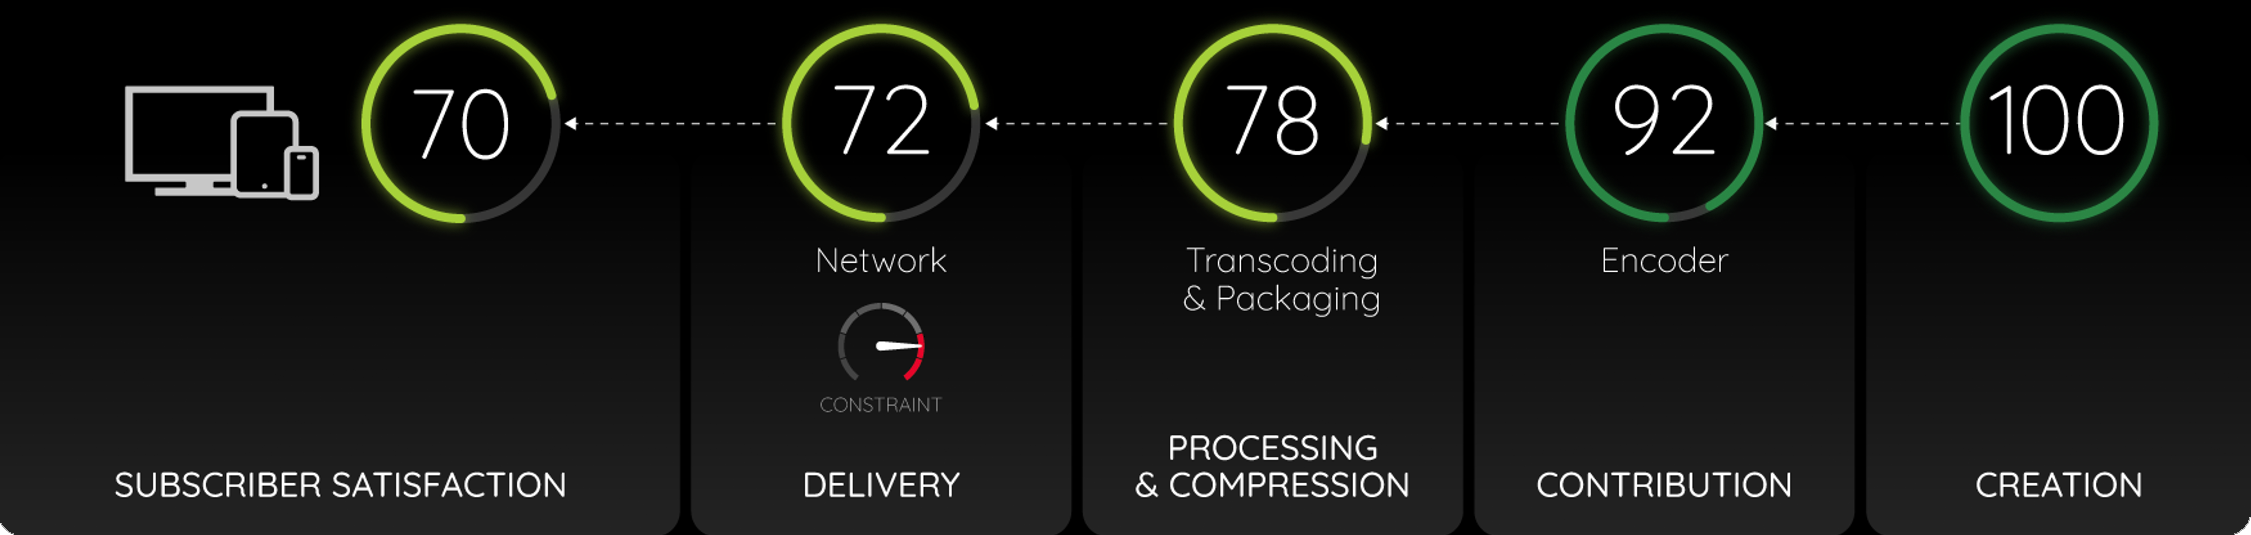 Subscriber satisfaction chain from creation (100 score) to processing and compression, then to final delivery the score lowers to 70.